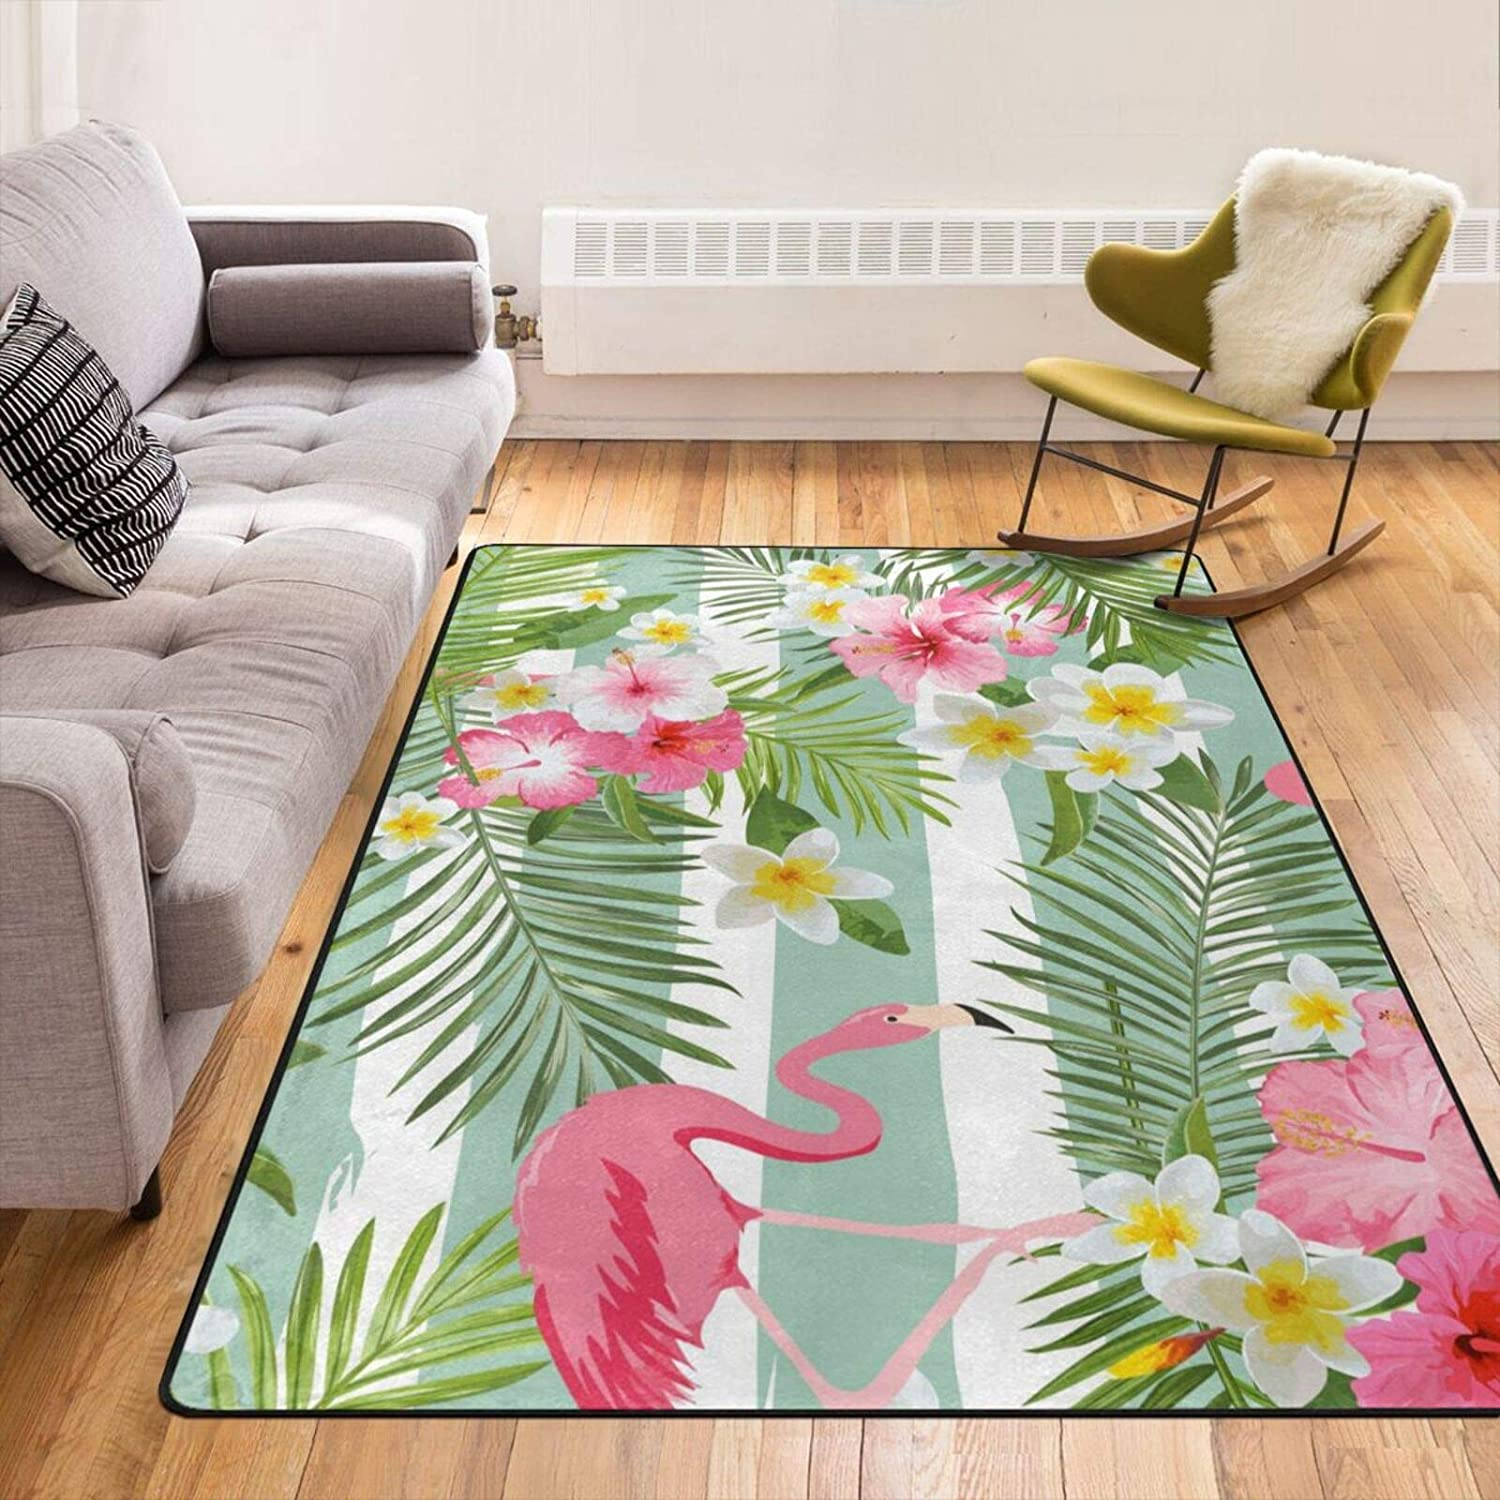 Flamingo Tropical Flower 低価格 Area Rugs Carpet Thick 売り出し Rug fo Pad